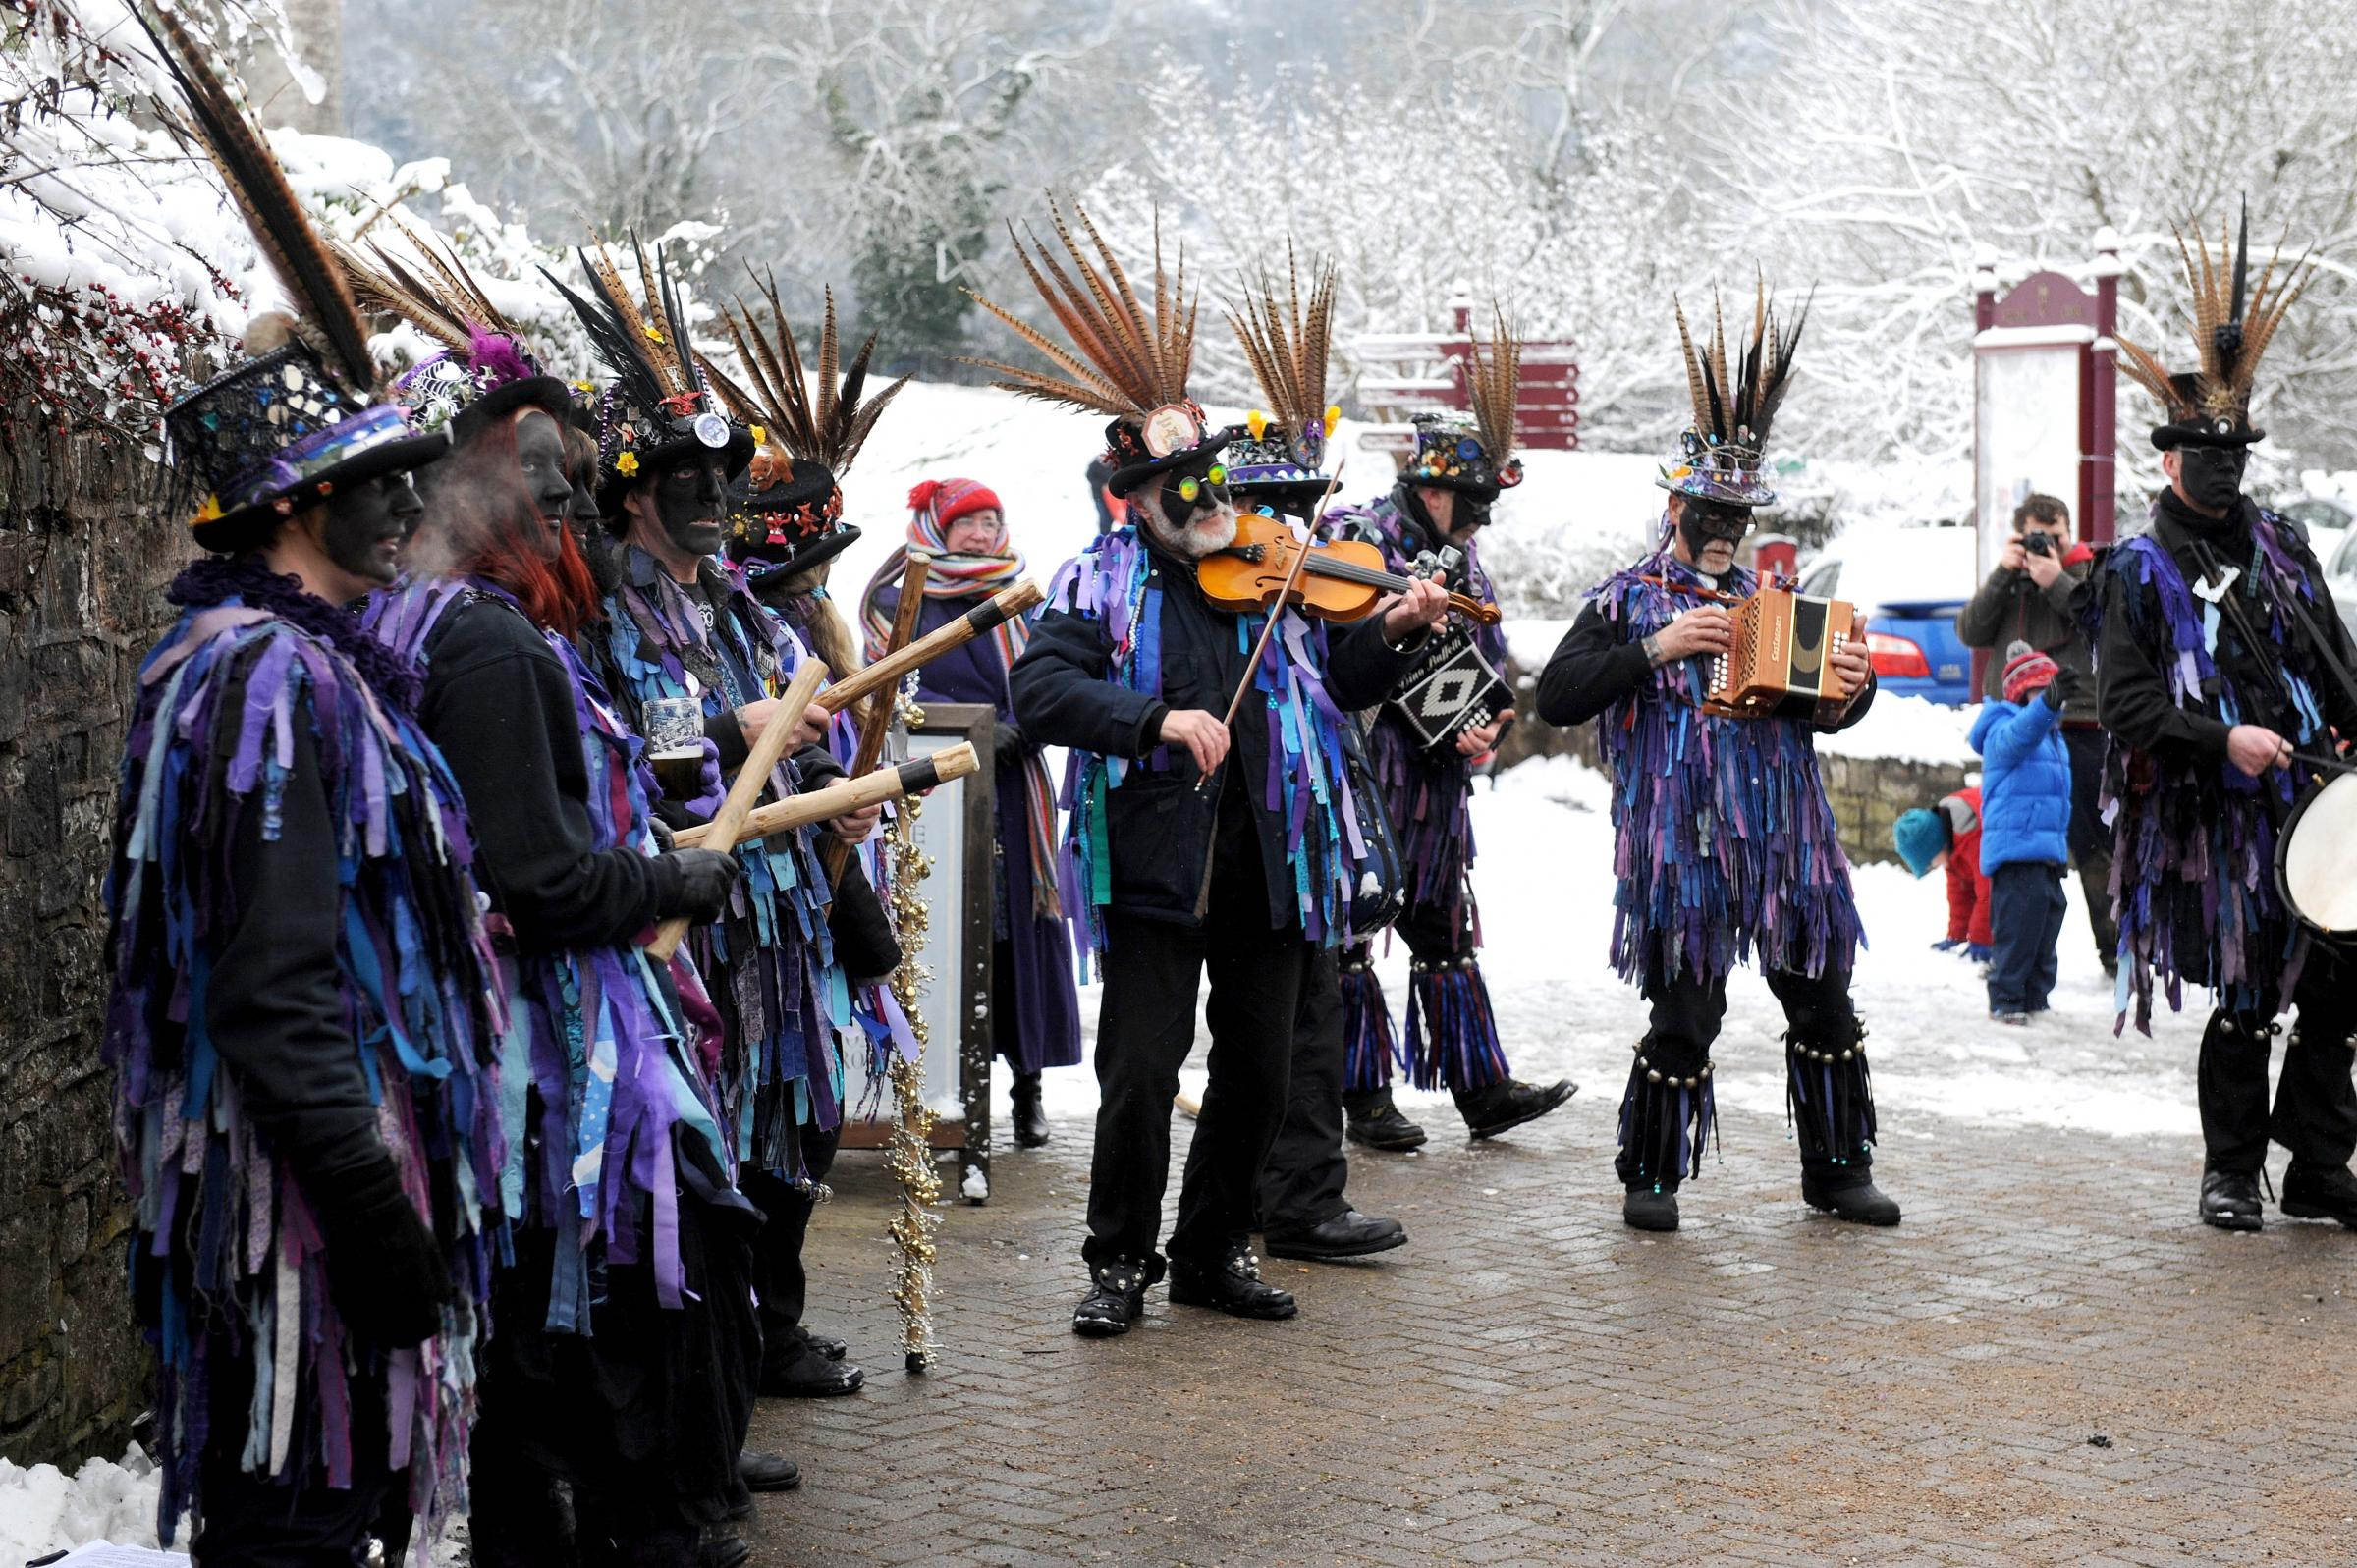 Chepstow to host ancient New Year celebration